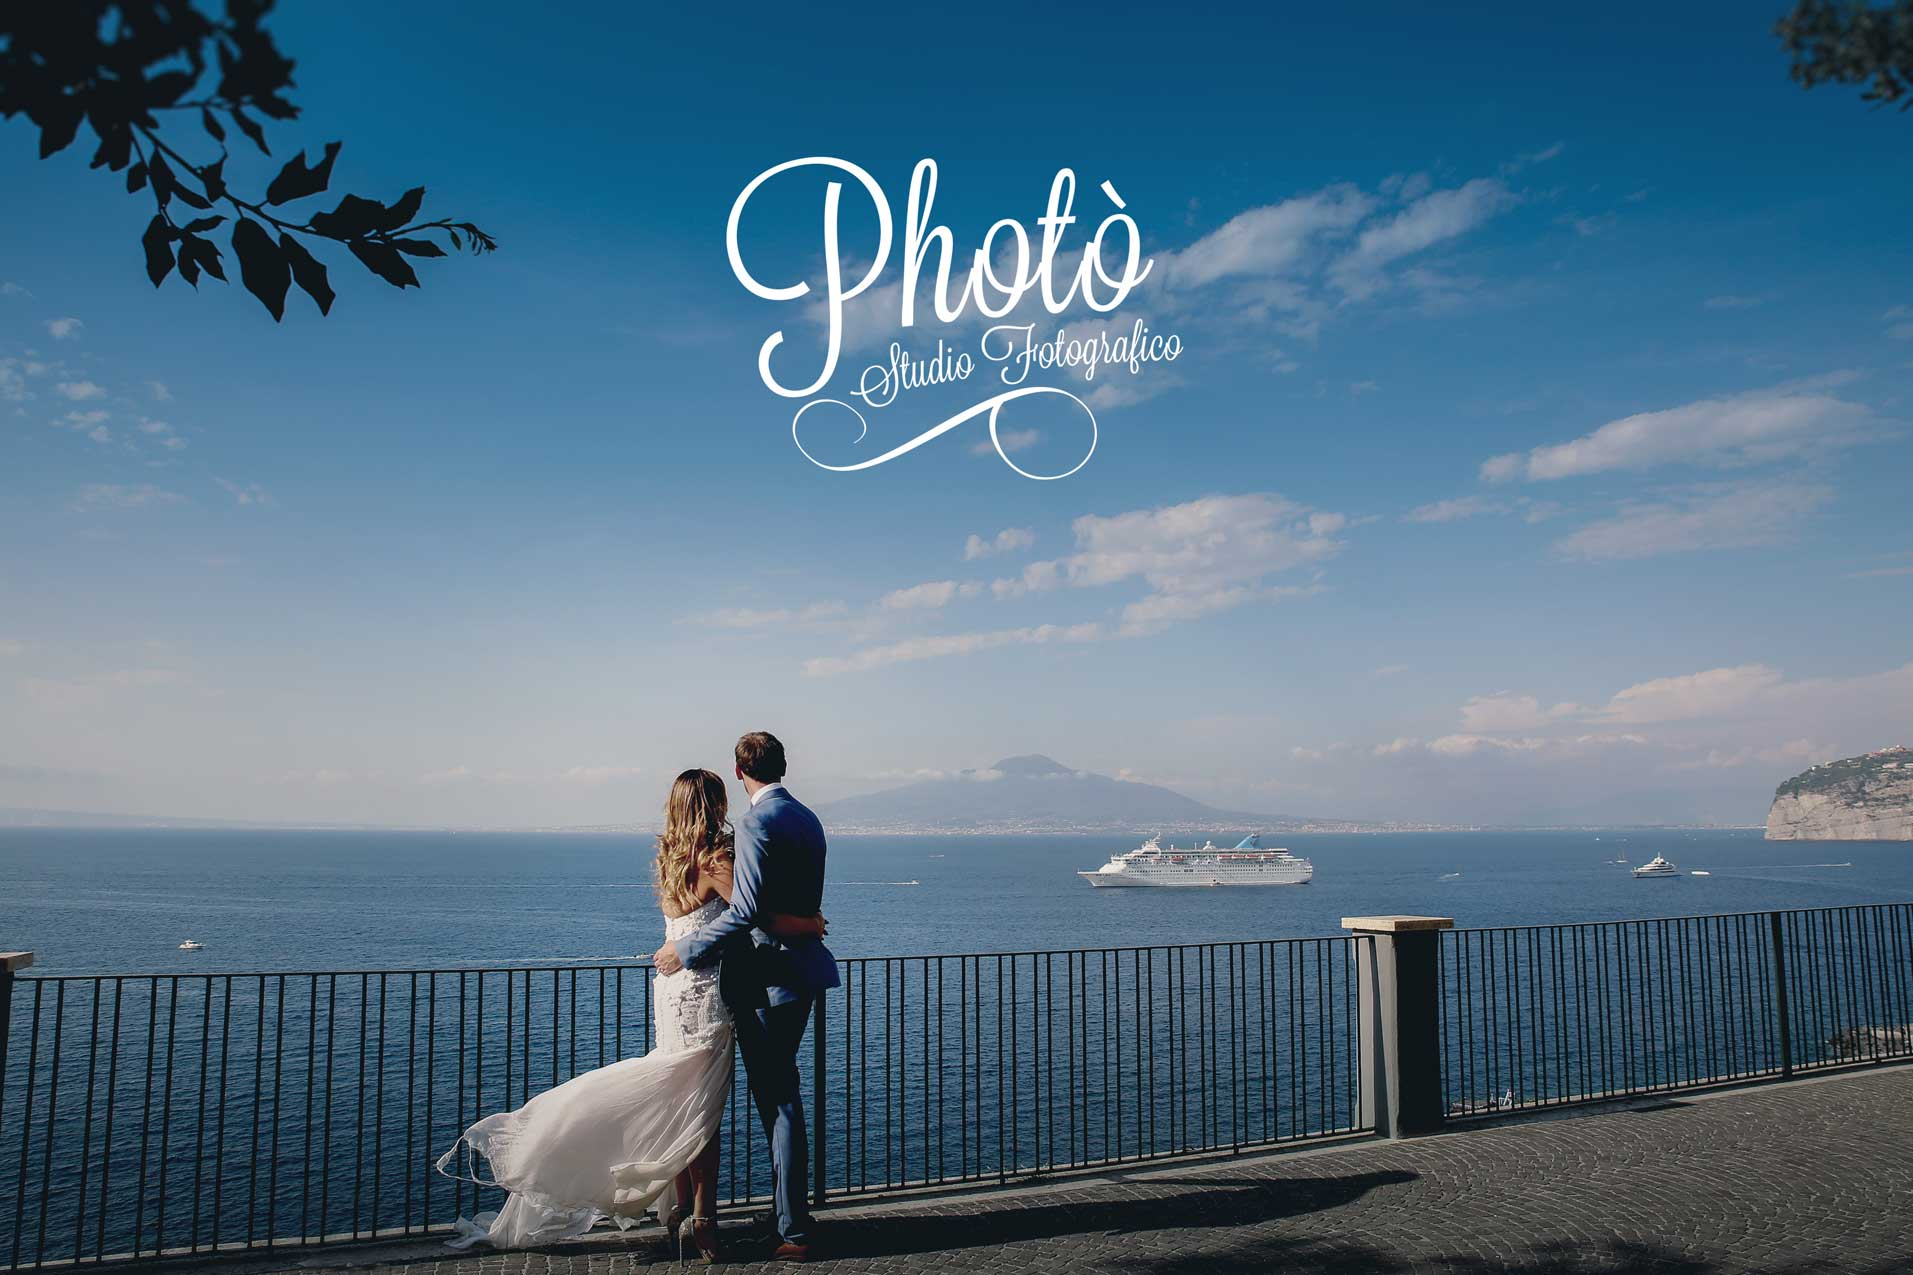 Amalfi Coast, Italy Wedding Photographer - Photò Studio Fotografico